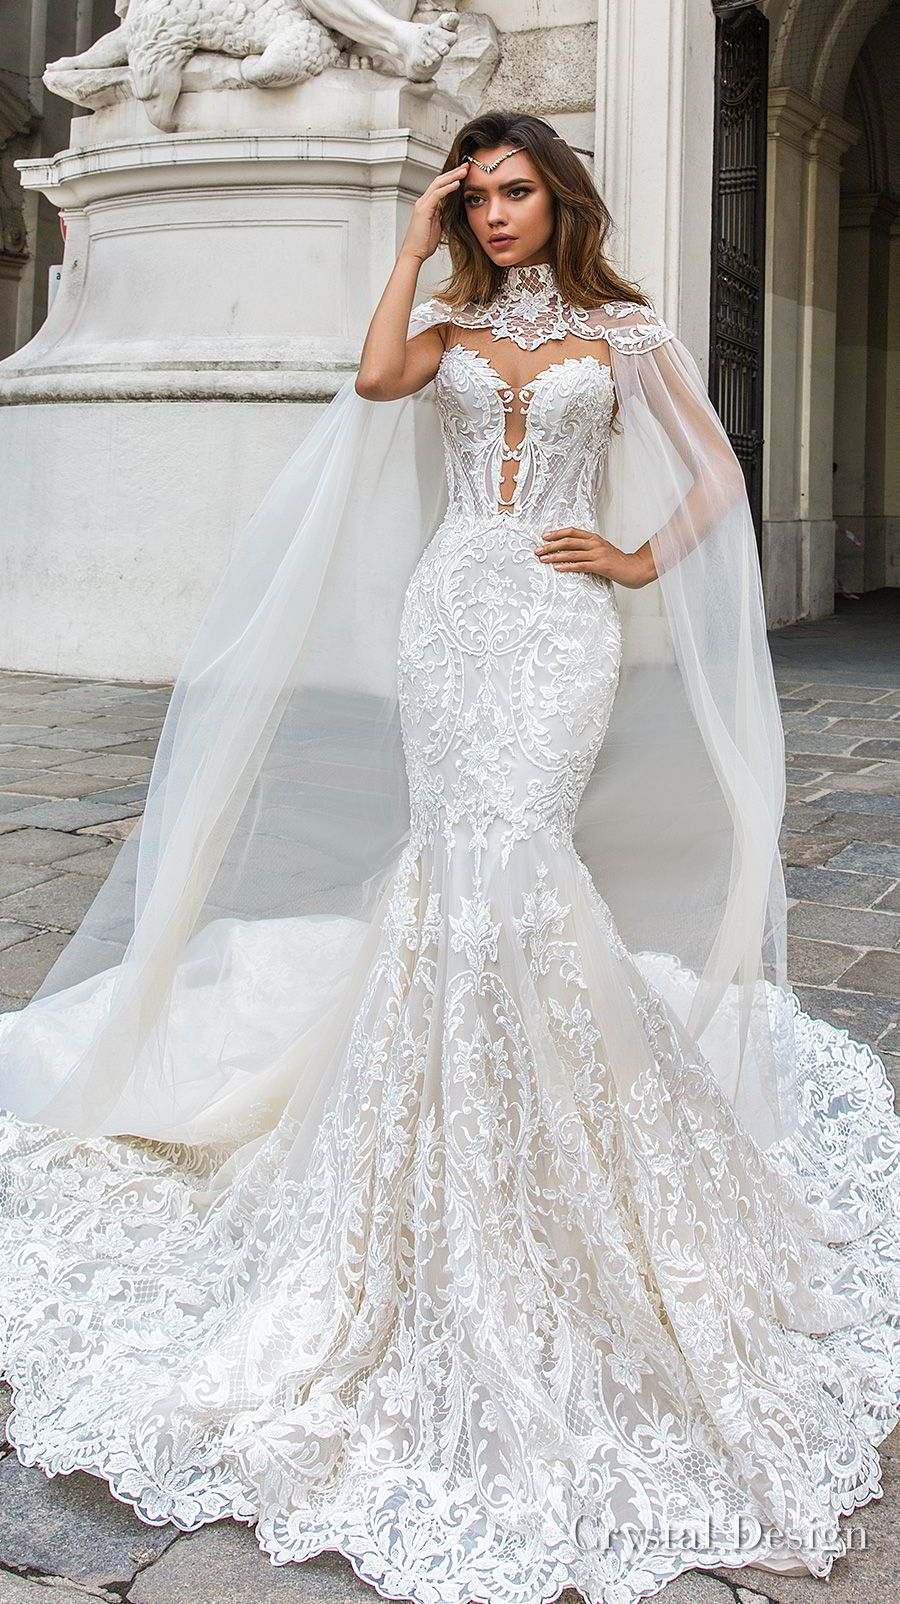 Crystal Design 2018 Sleeveless Strapless Deep Plunging Sweetheart Neckline Full Embellishment Elegant Mermaid Wedding Dress Sheer On Back Chapel Train